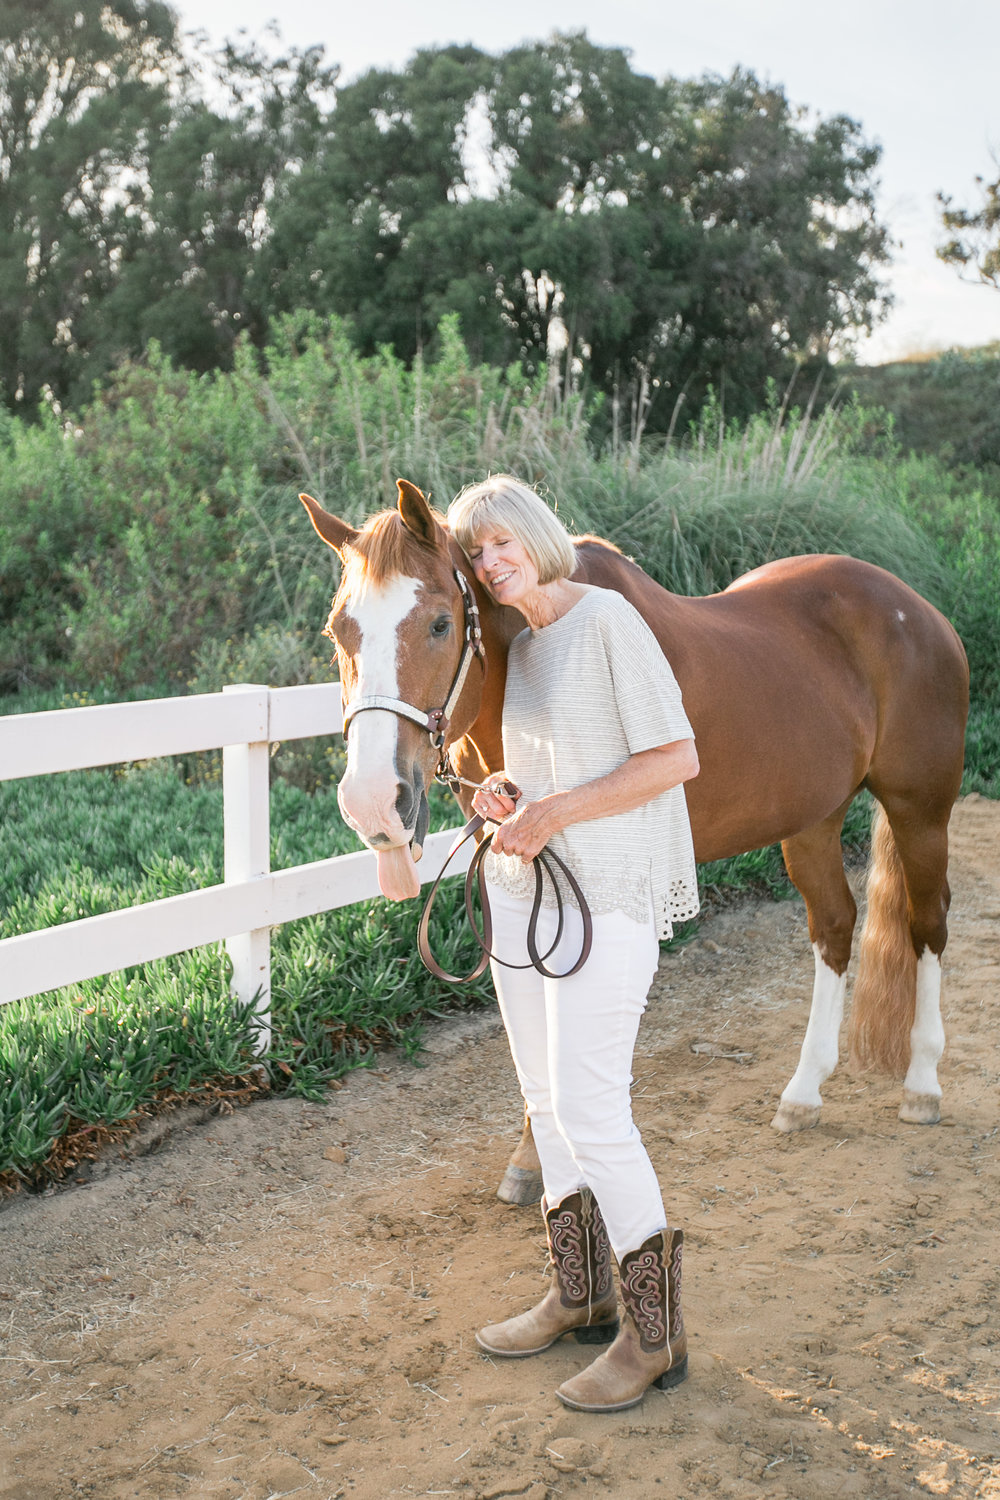 Mendola_Family _Session_Del_Mar_Equestrian_Ranch_2017-16.jpg